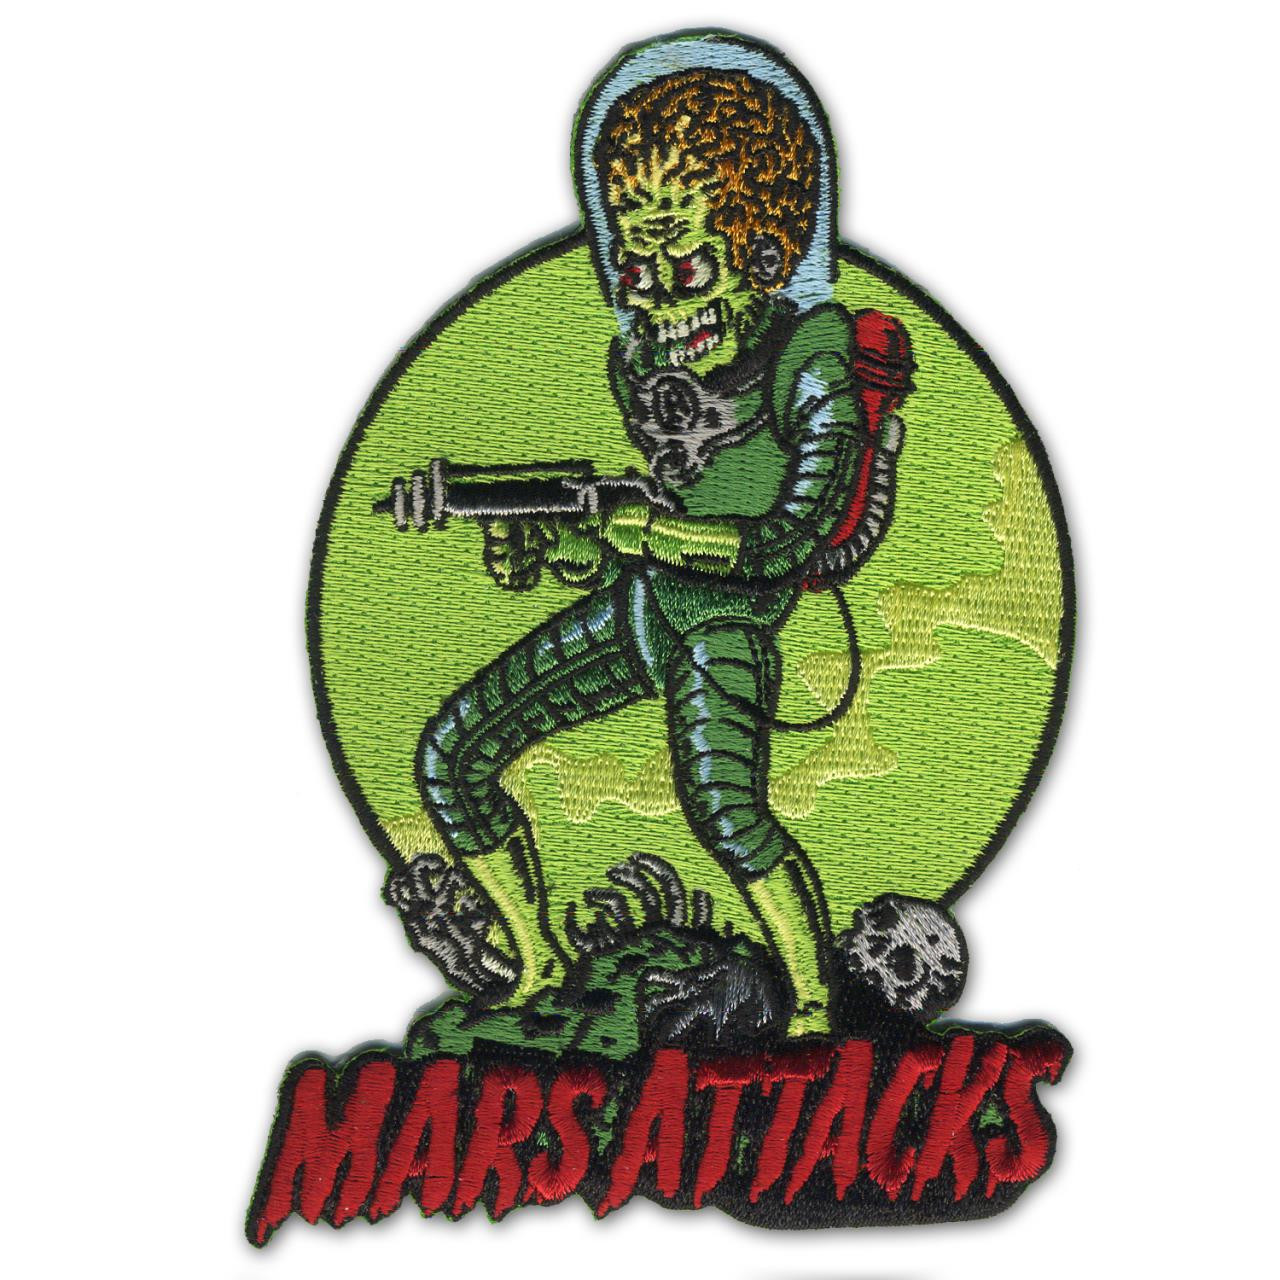 Mars Attacks Death Trooper Patch - 0641938656381